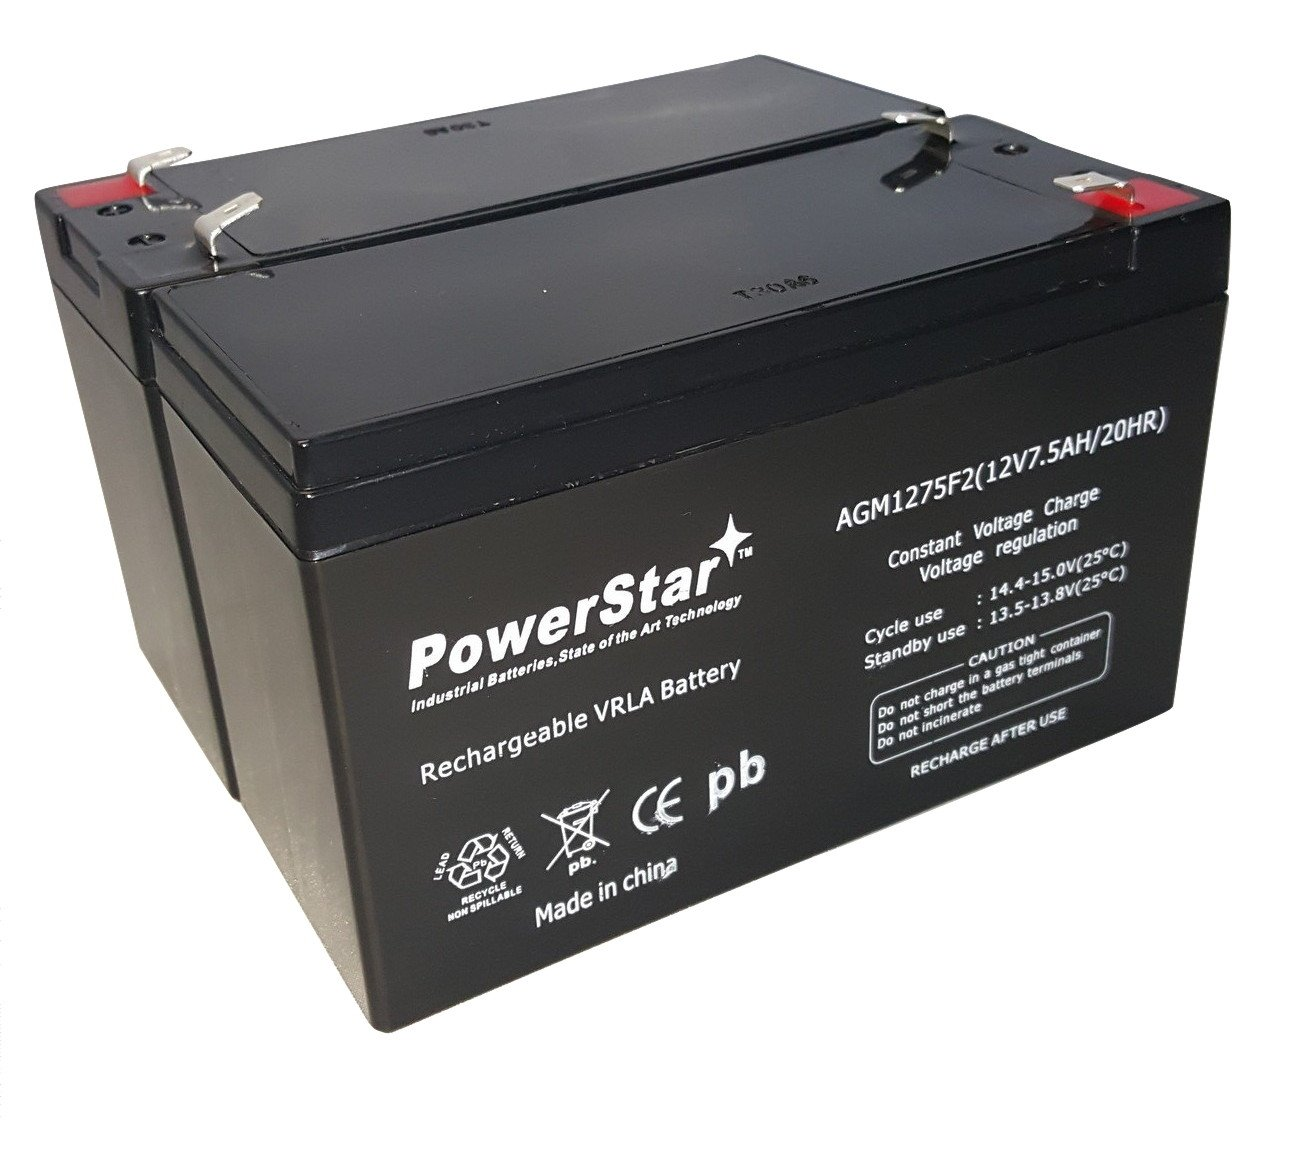 Amazon.com: 12V 7.5AH BATTERY for RAZOR E200 & E300S ELECTRIC ... on honda scooter battery, power scooter battery, honda atv 12v battery, 36 volt electric bike battery, electric scooter battery,